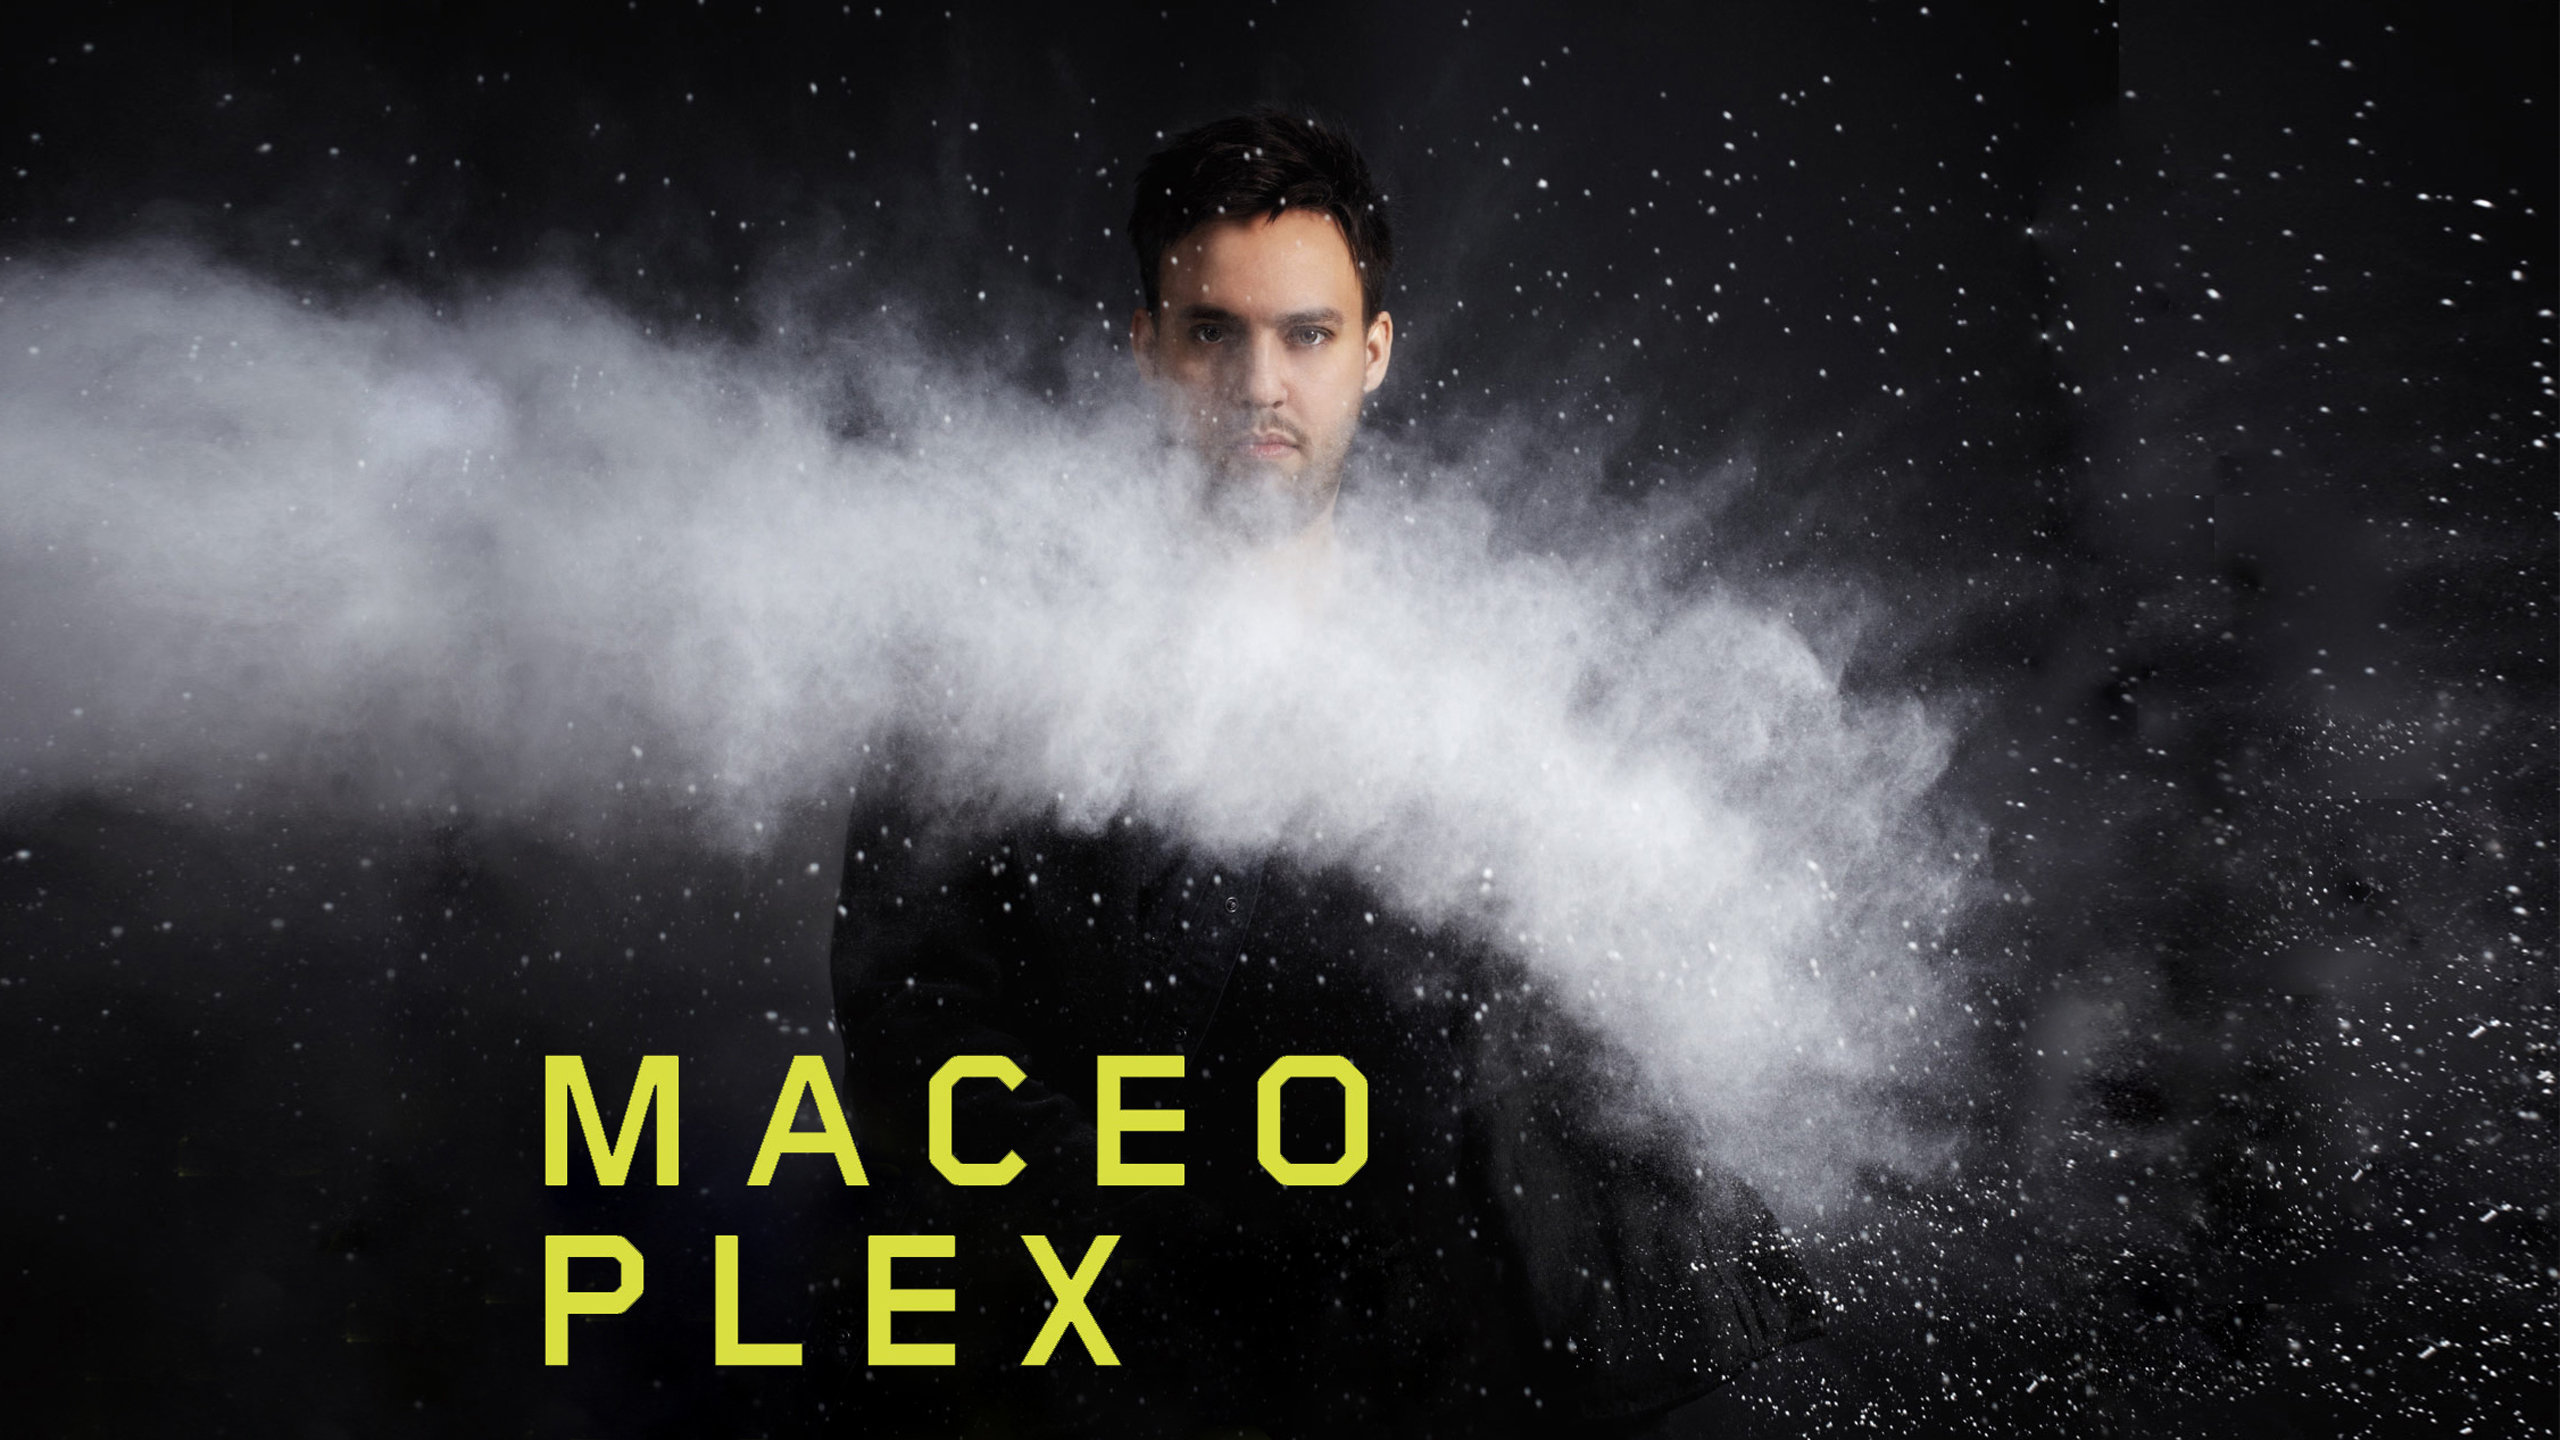 Maceo Plex Wallpaper